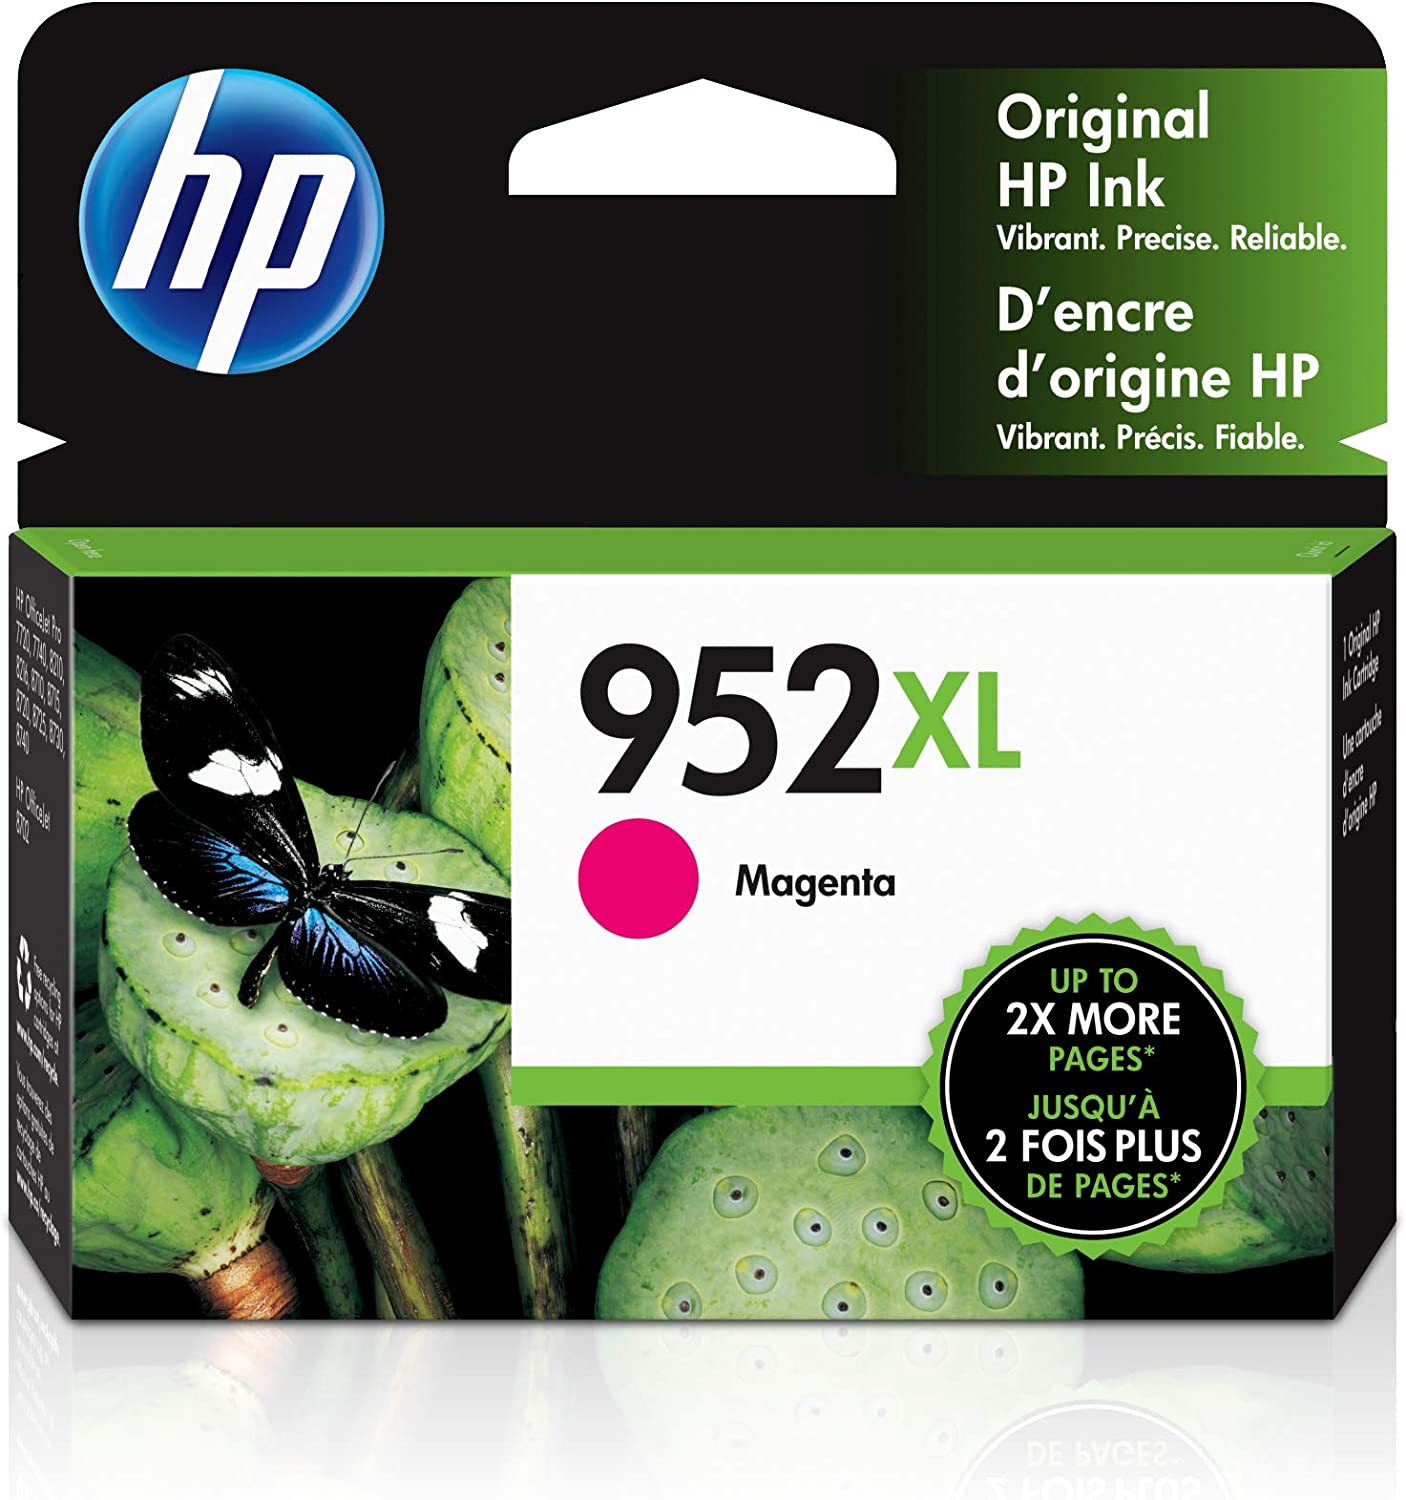 Magenta, 1-Pack SuperInk High Yield Remanufactured Ink Cartridge Compatible for HP 952 952XL 952 XL LOS64AN use in Officejet Pro 8710 8720 8216 7720 7740 8200 8210 8715 8740 Printer